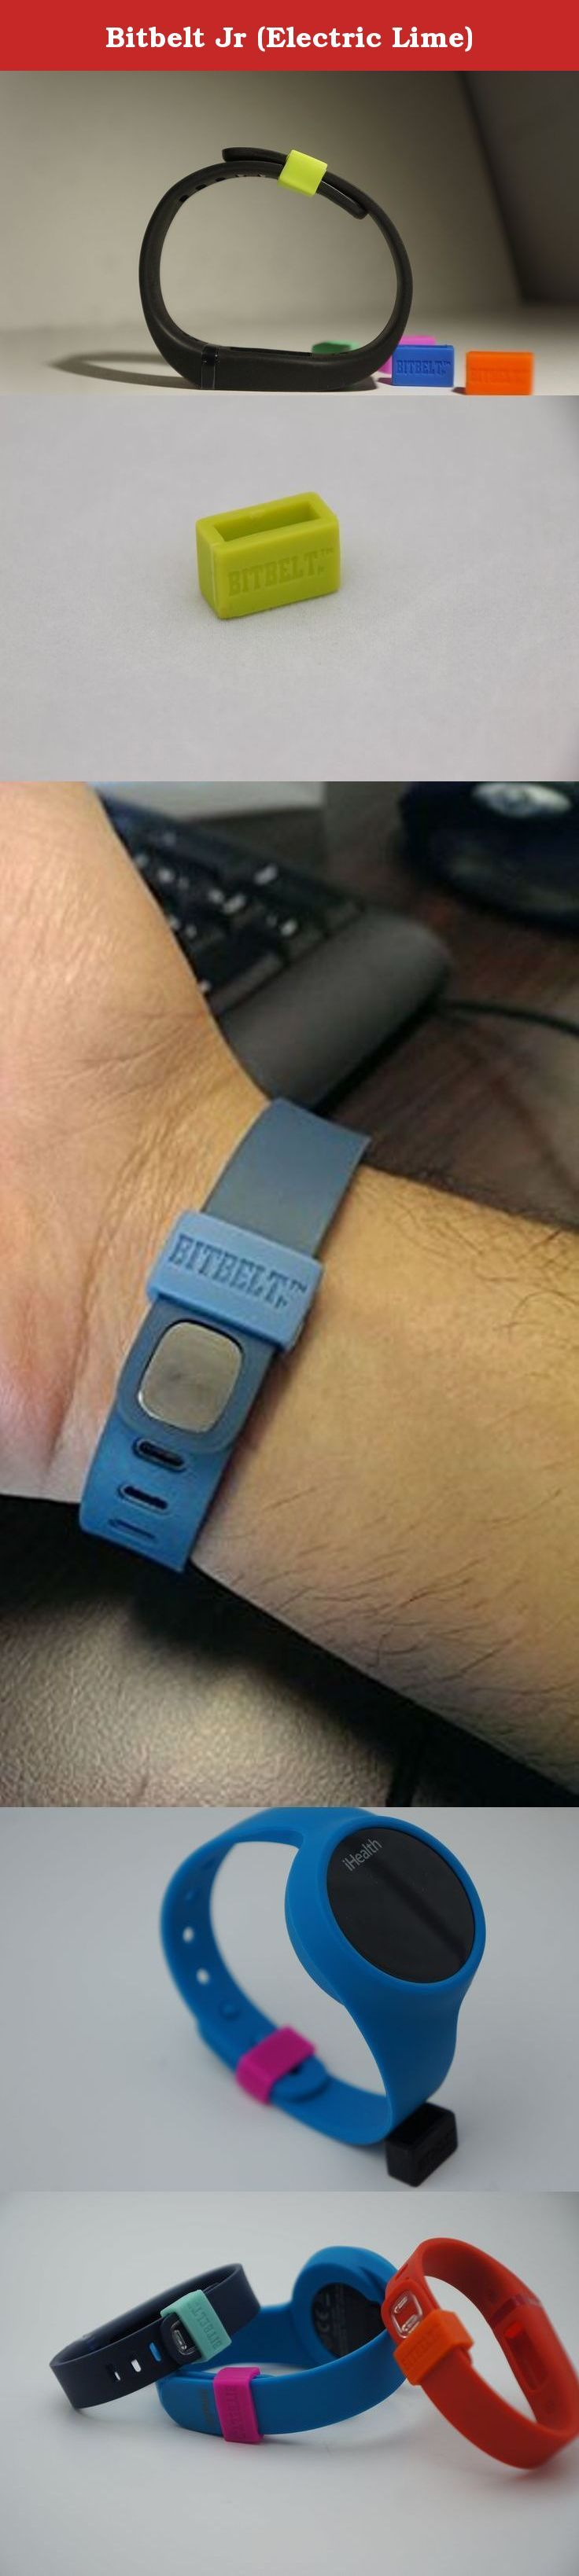 Bitbelt Jr (Electric Lime). BITBELT JR CREATED TO PROTECT YOUR THINNER WIDTH WRIST WORN FITNESS TRACKER AND CHILD SIZE MAGIC BAND. DONT RELY ON A SMALL PLASTIC CLIP TO SECURE YOUR INVESTMENT TO HEALTH OR YOUR VACATION.WE ARE THE CHEAPEST INSURANCE AVAILABLE. Your bracelet will come unclasped. We are the cheapest insurance available to keep yours from being lost.